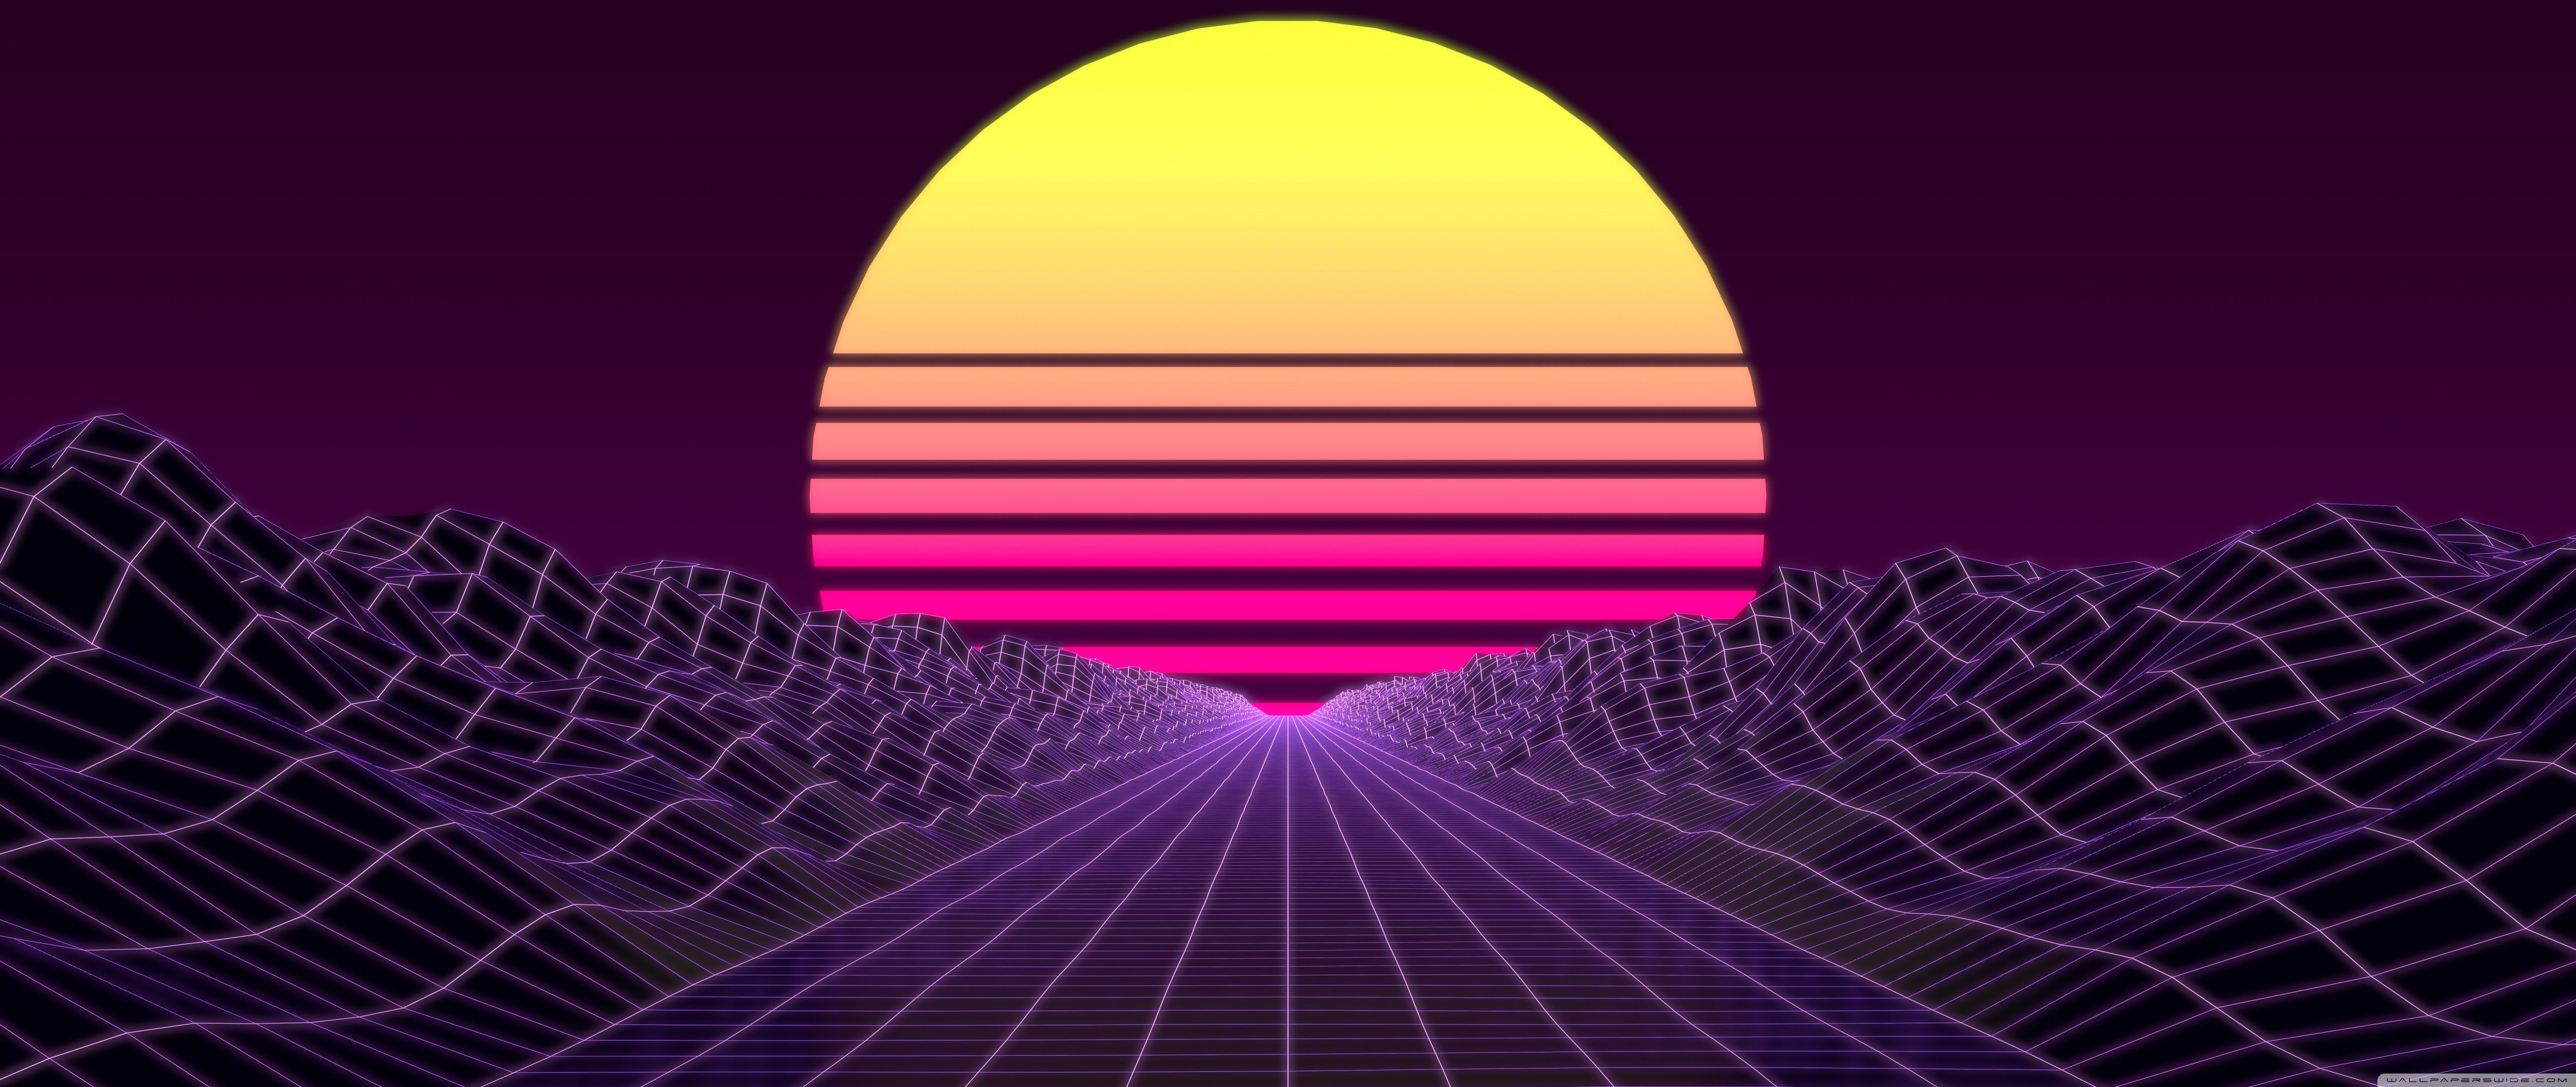 Synthwave Wallpapers Top Free Synthwave Backgrounds Wallpaperaccess